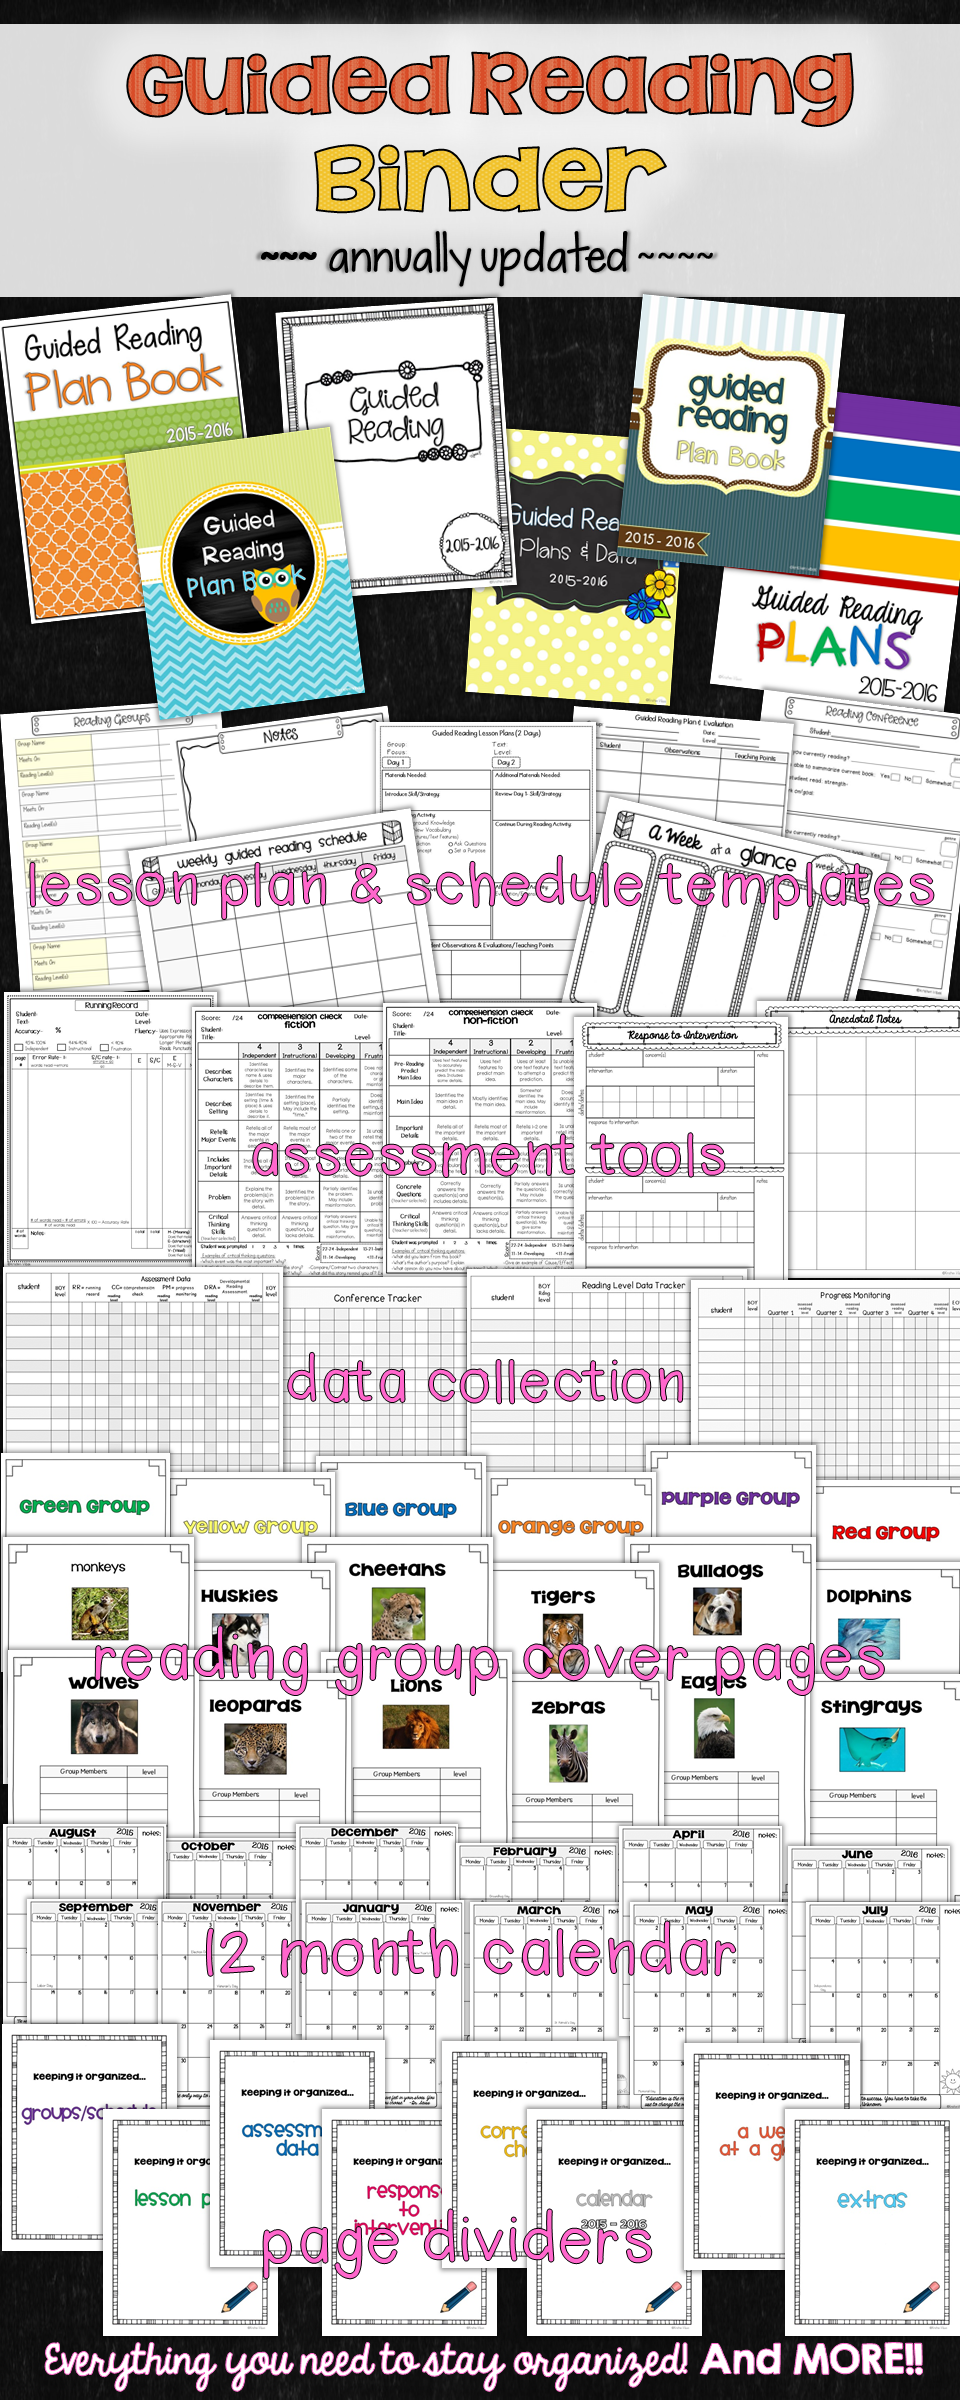 Guided Reading Plan Book - stay organized with your guided reading plans, data collection, schedules & more!